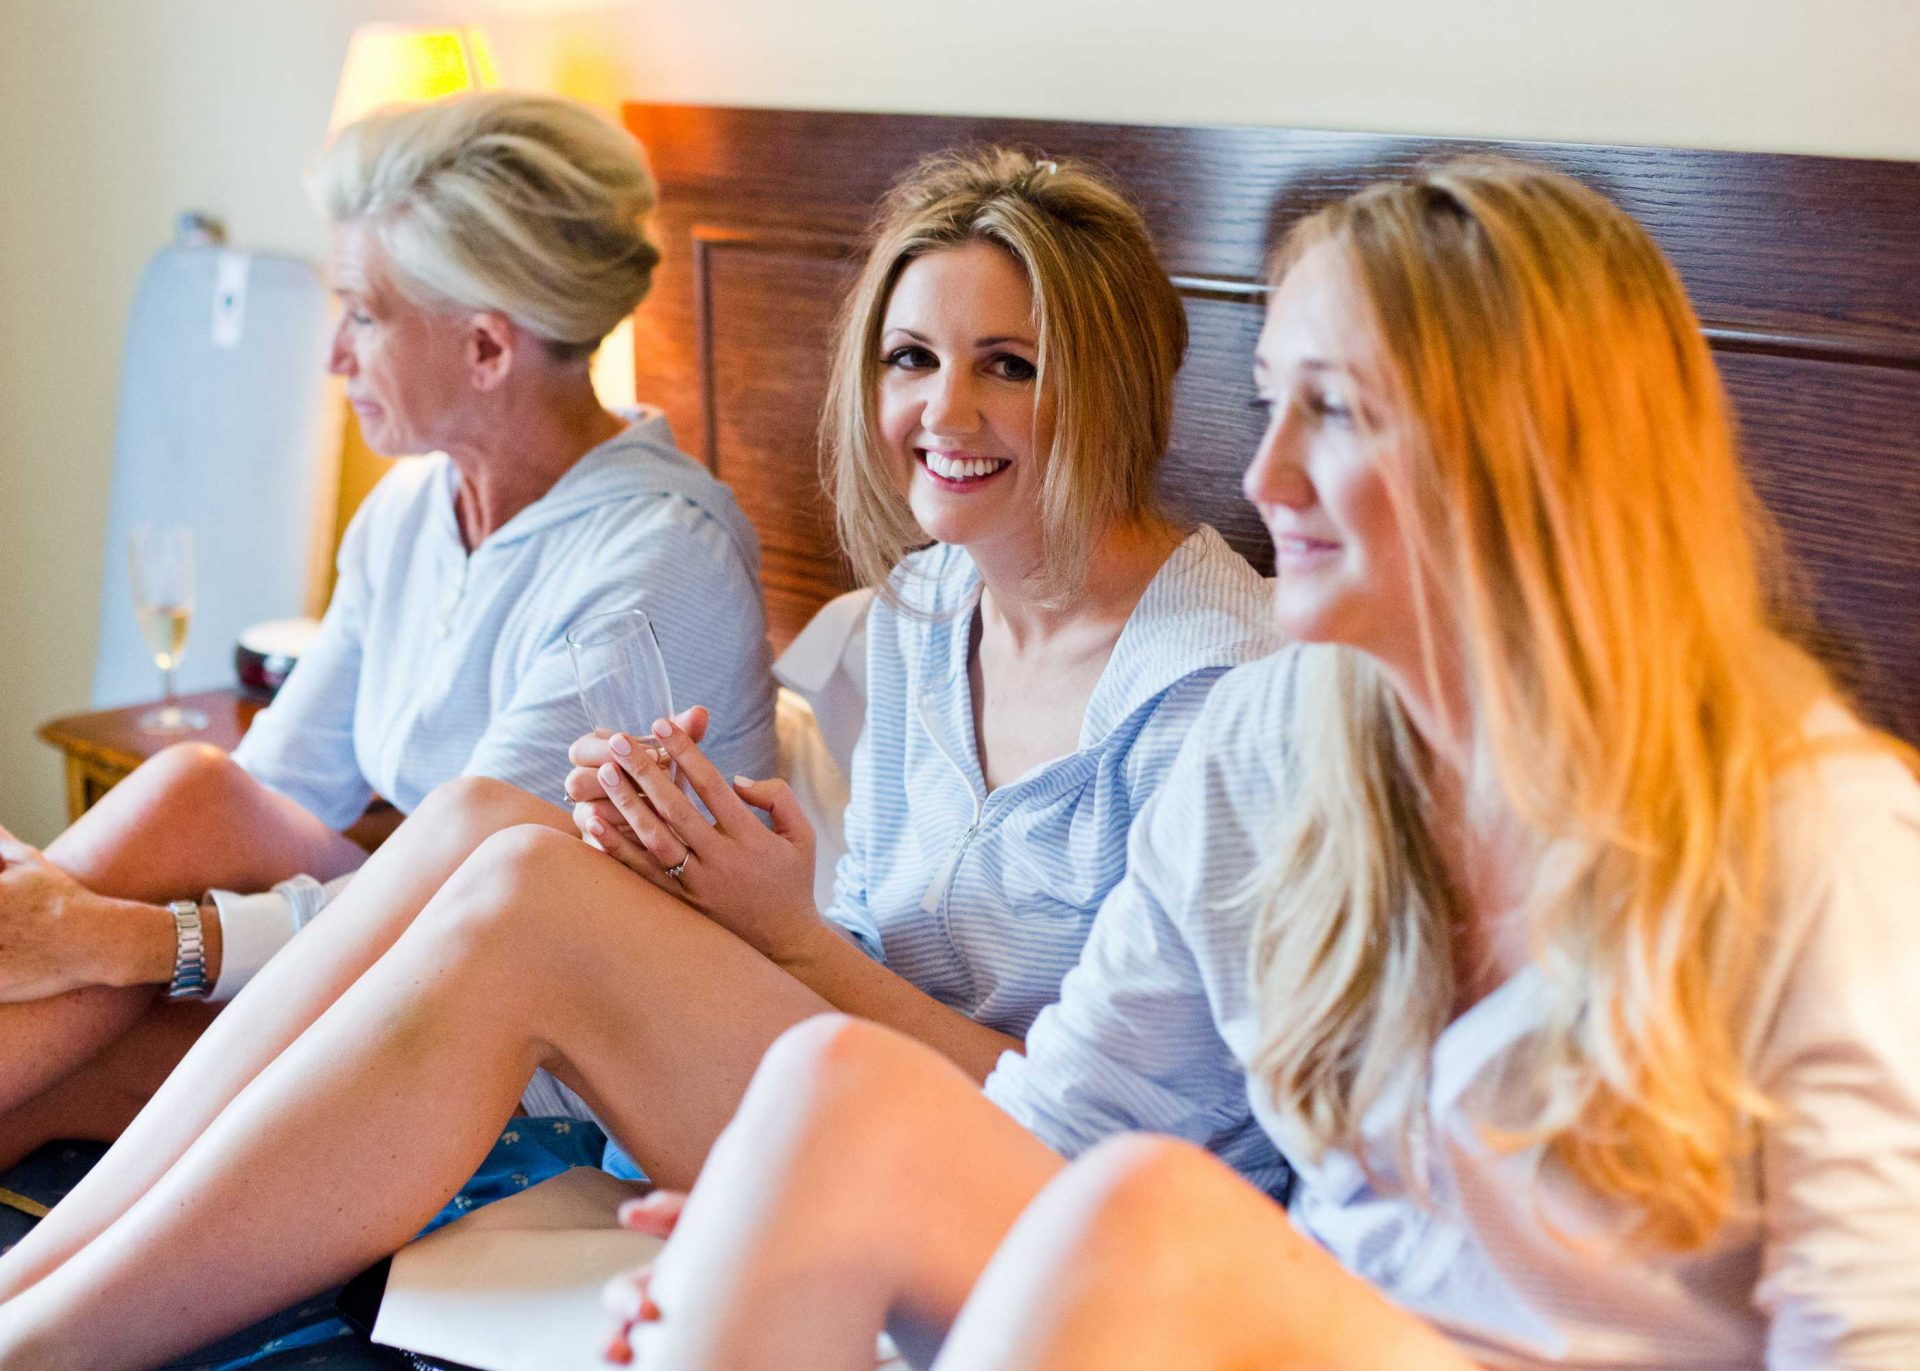 Bride and bridesmaids in pyjamas in bed